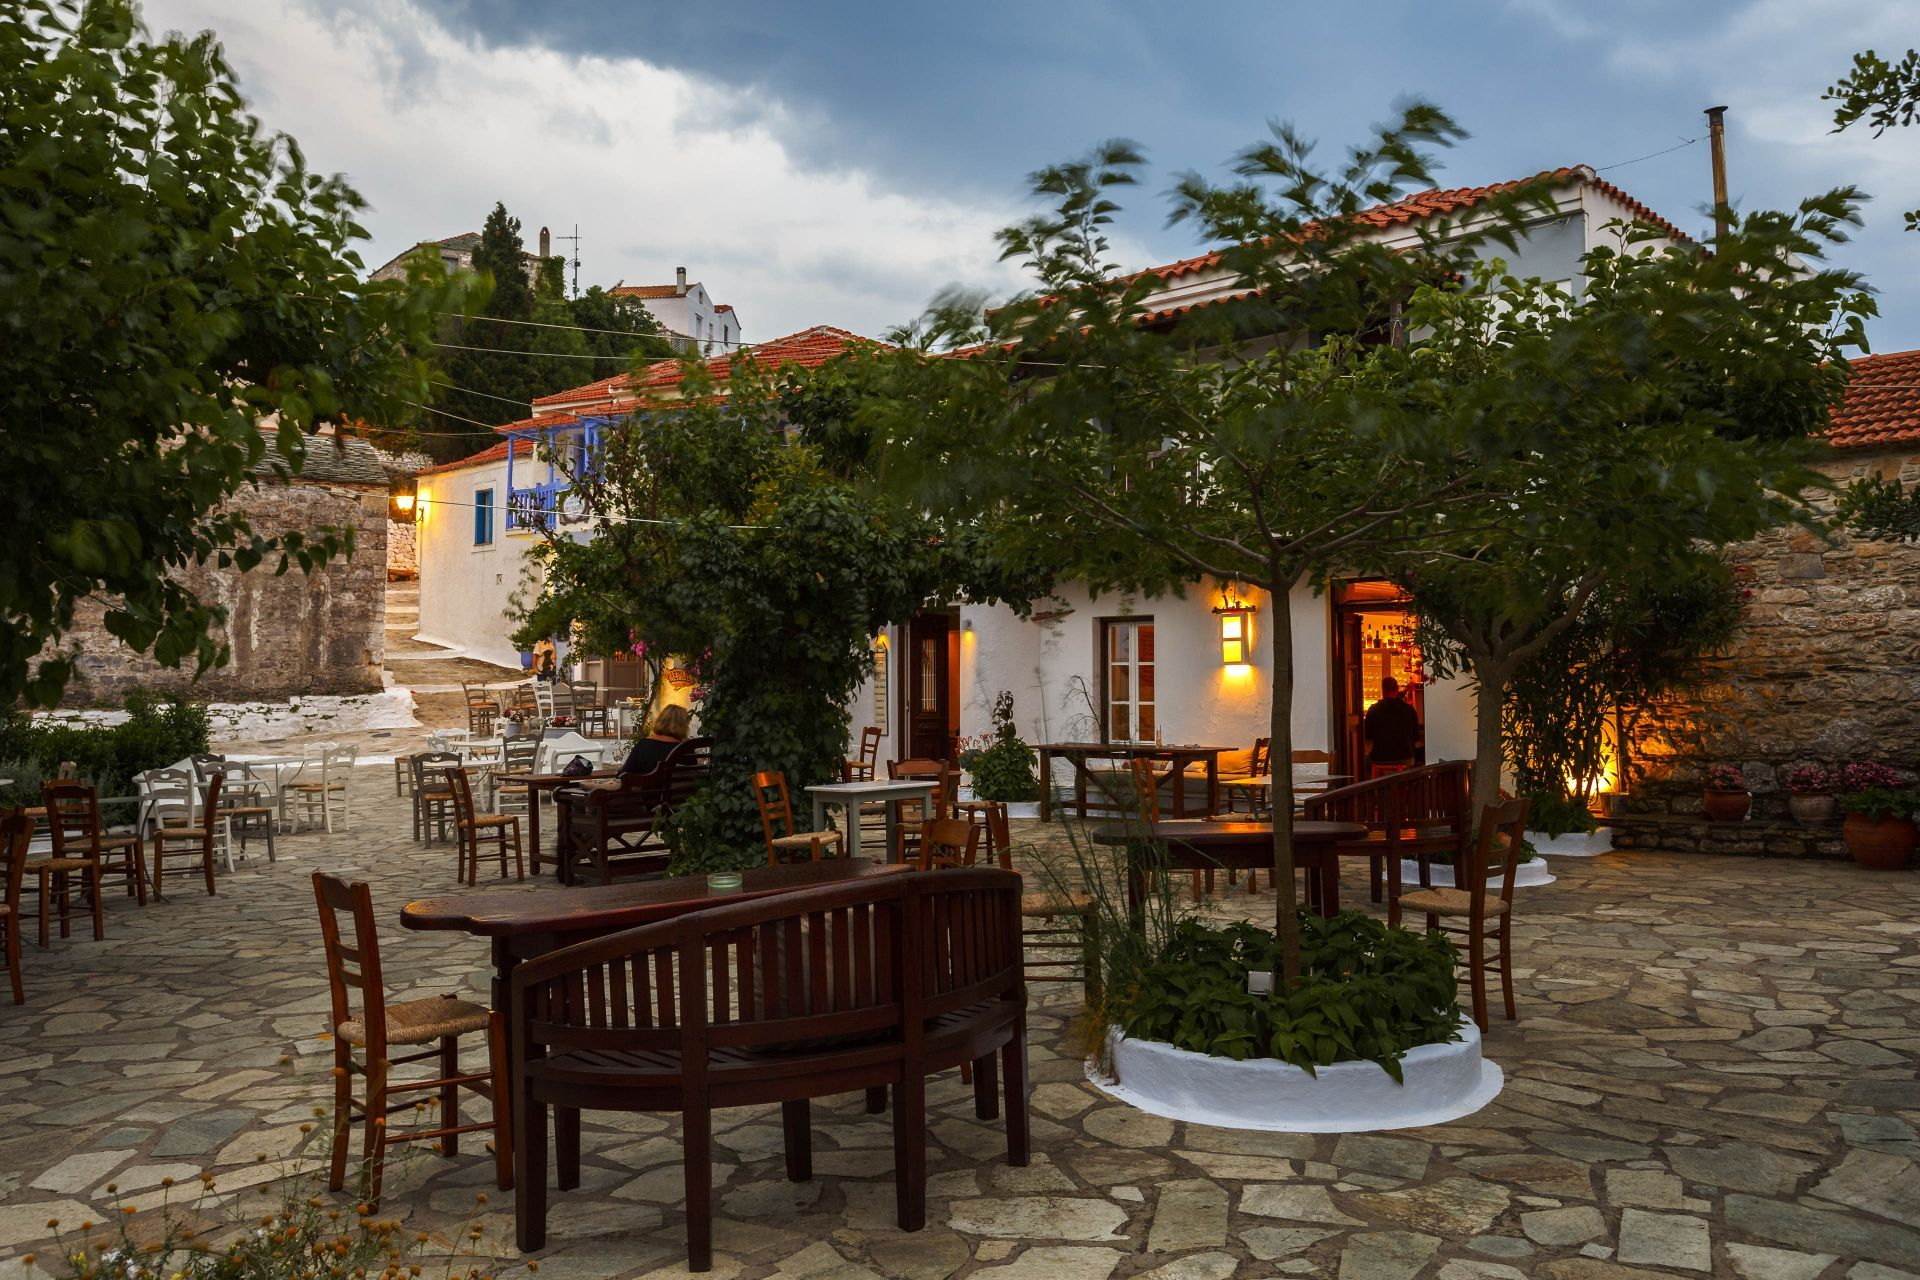 Cafes in Alonissos